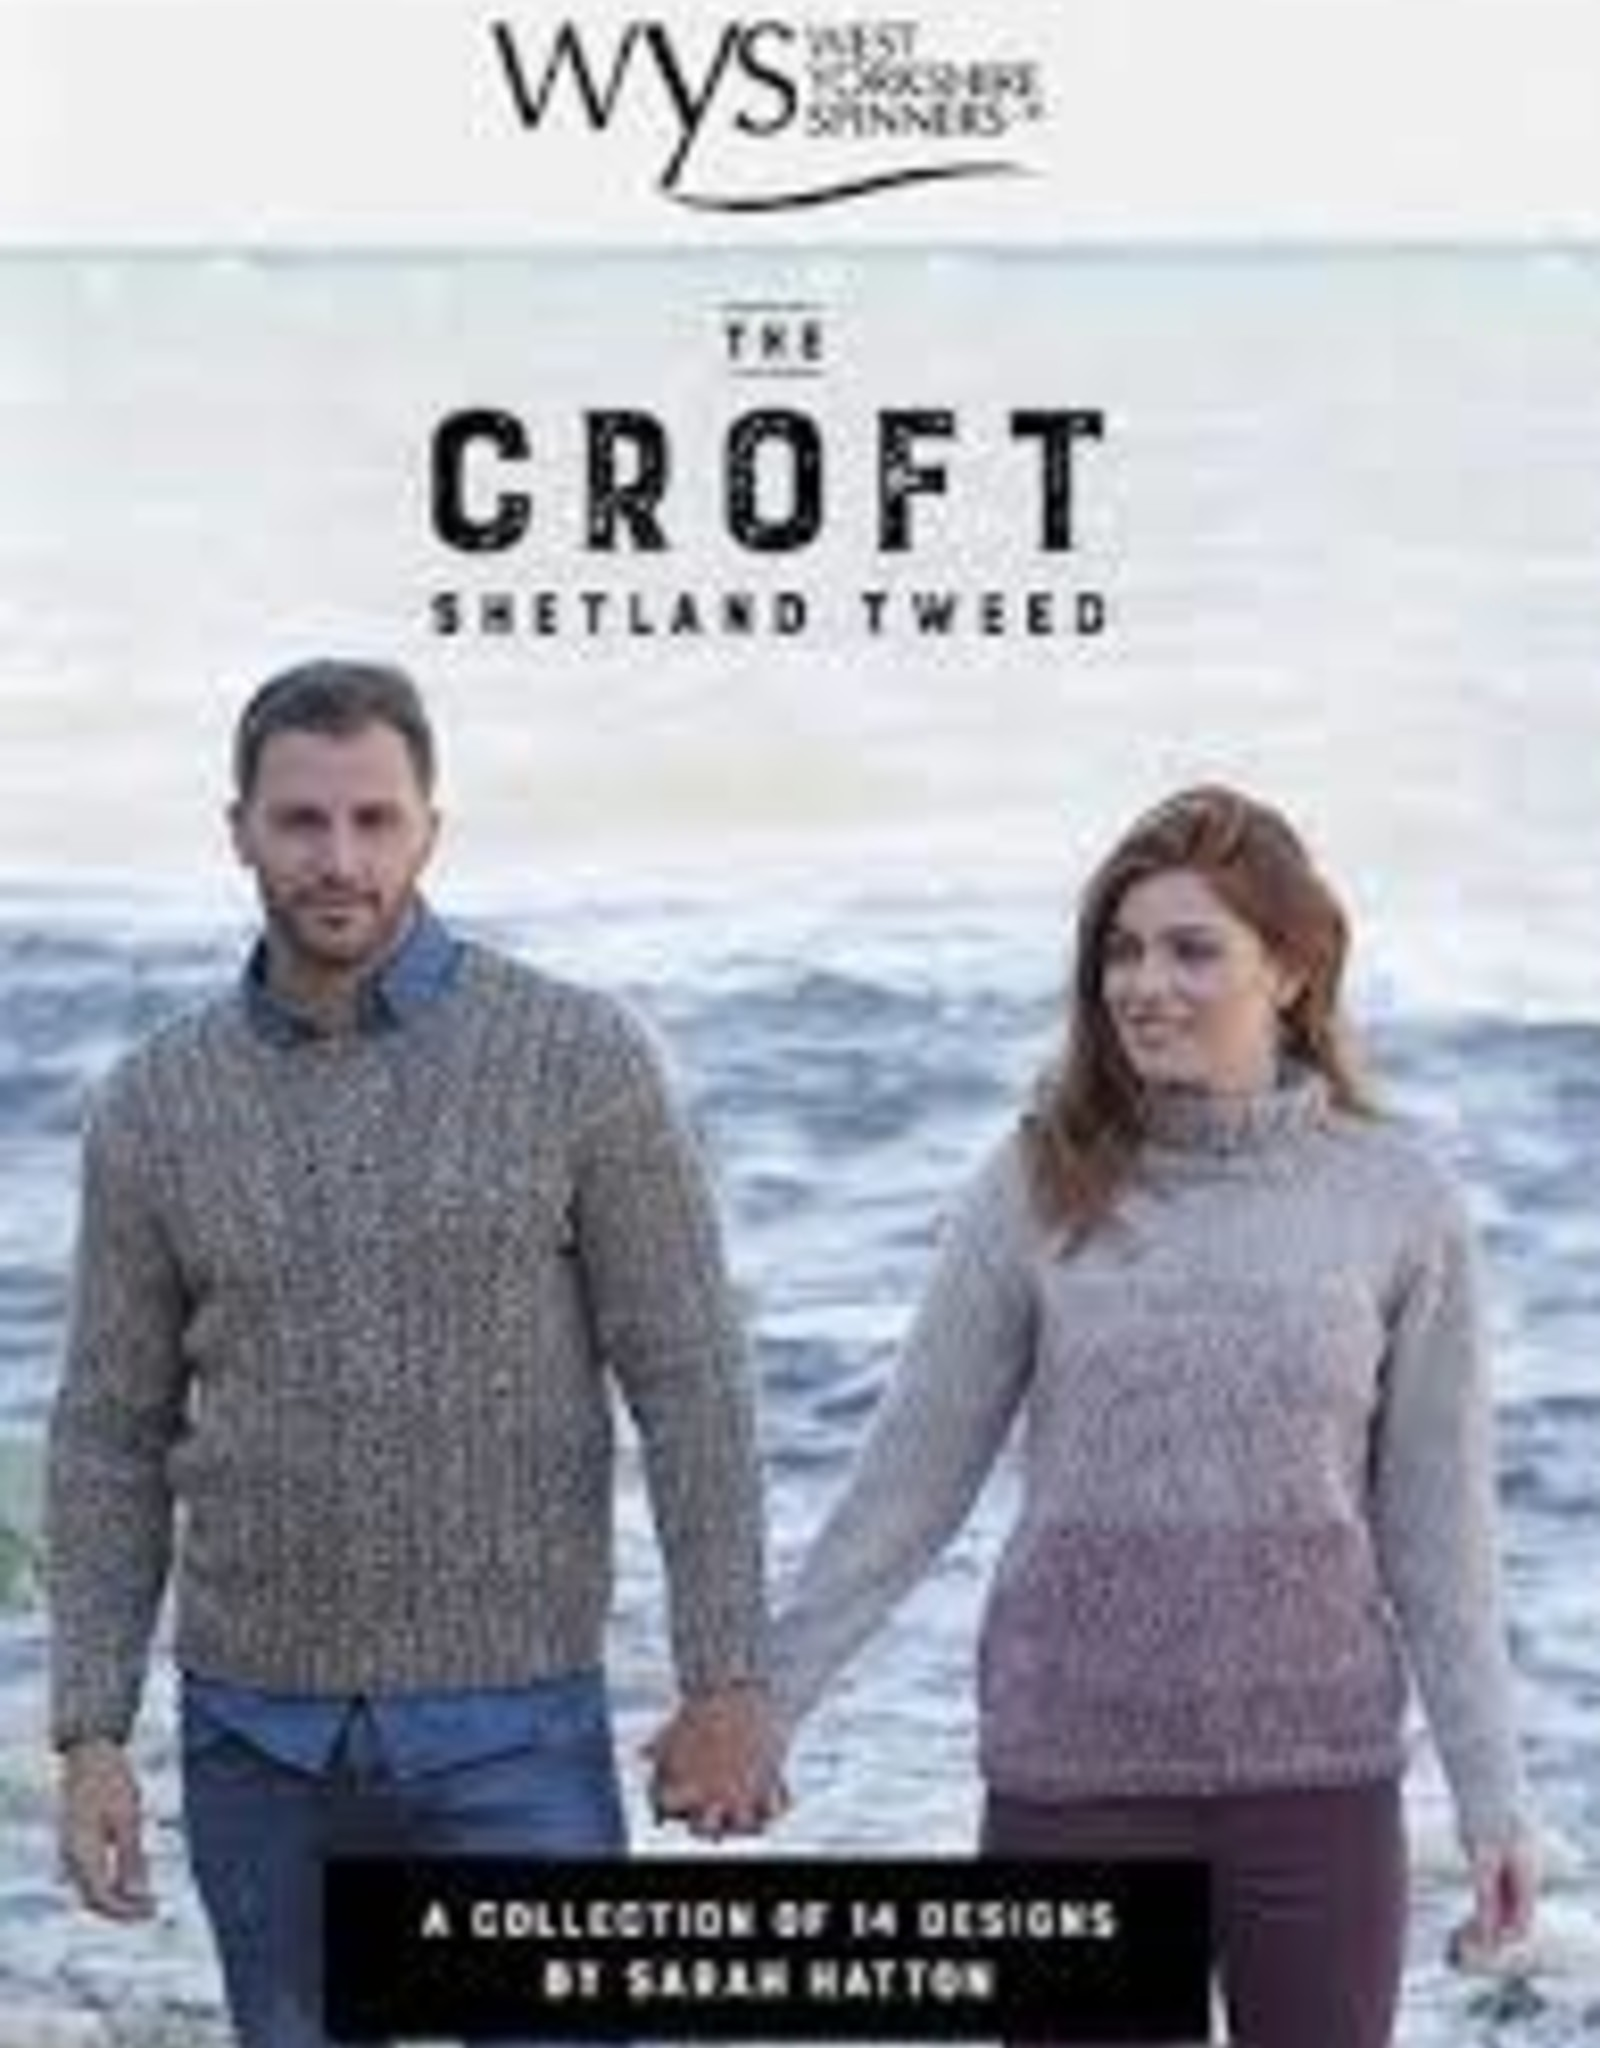 Book - The Croft Shetland Tweed